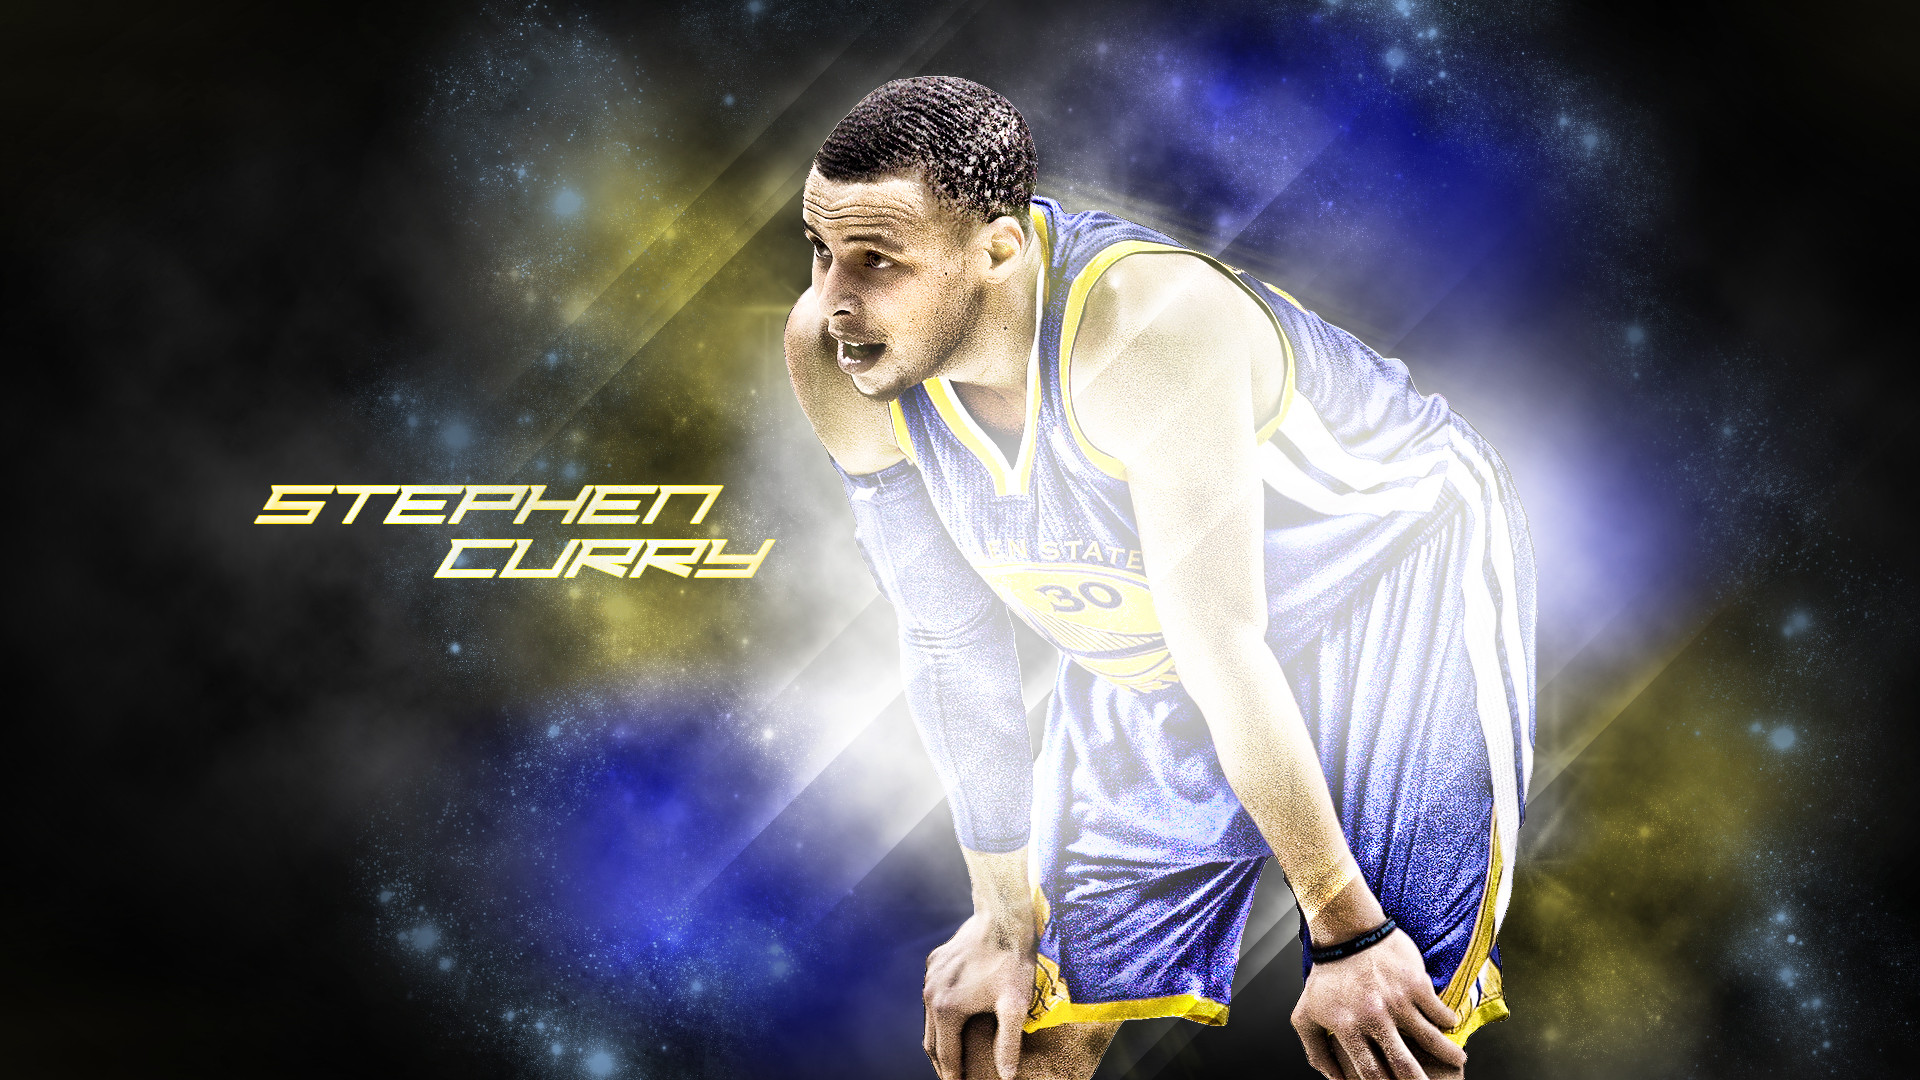 Stephen Curry; Designed by Ryan Gray | Basketball Related | Pinterest |  Stephen curry, Golden state and Golden state warriors